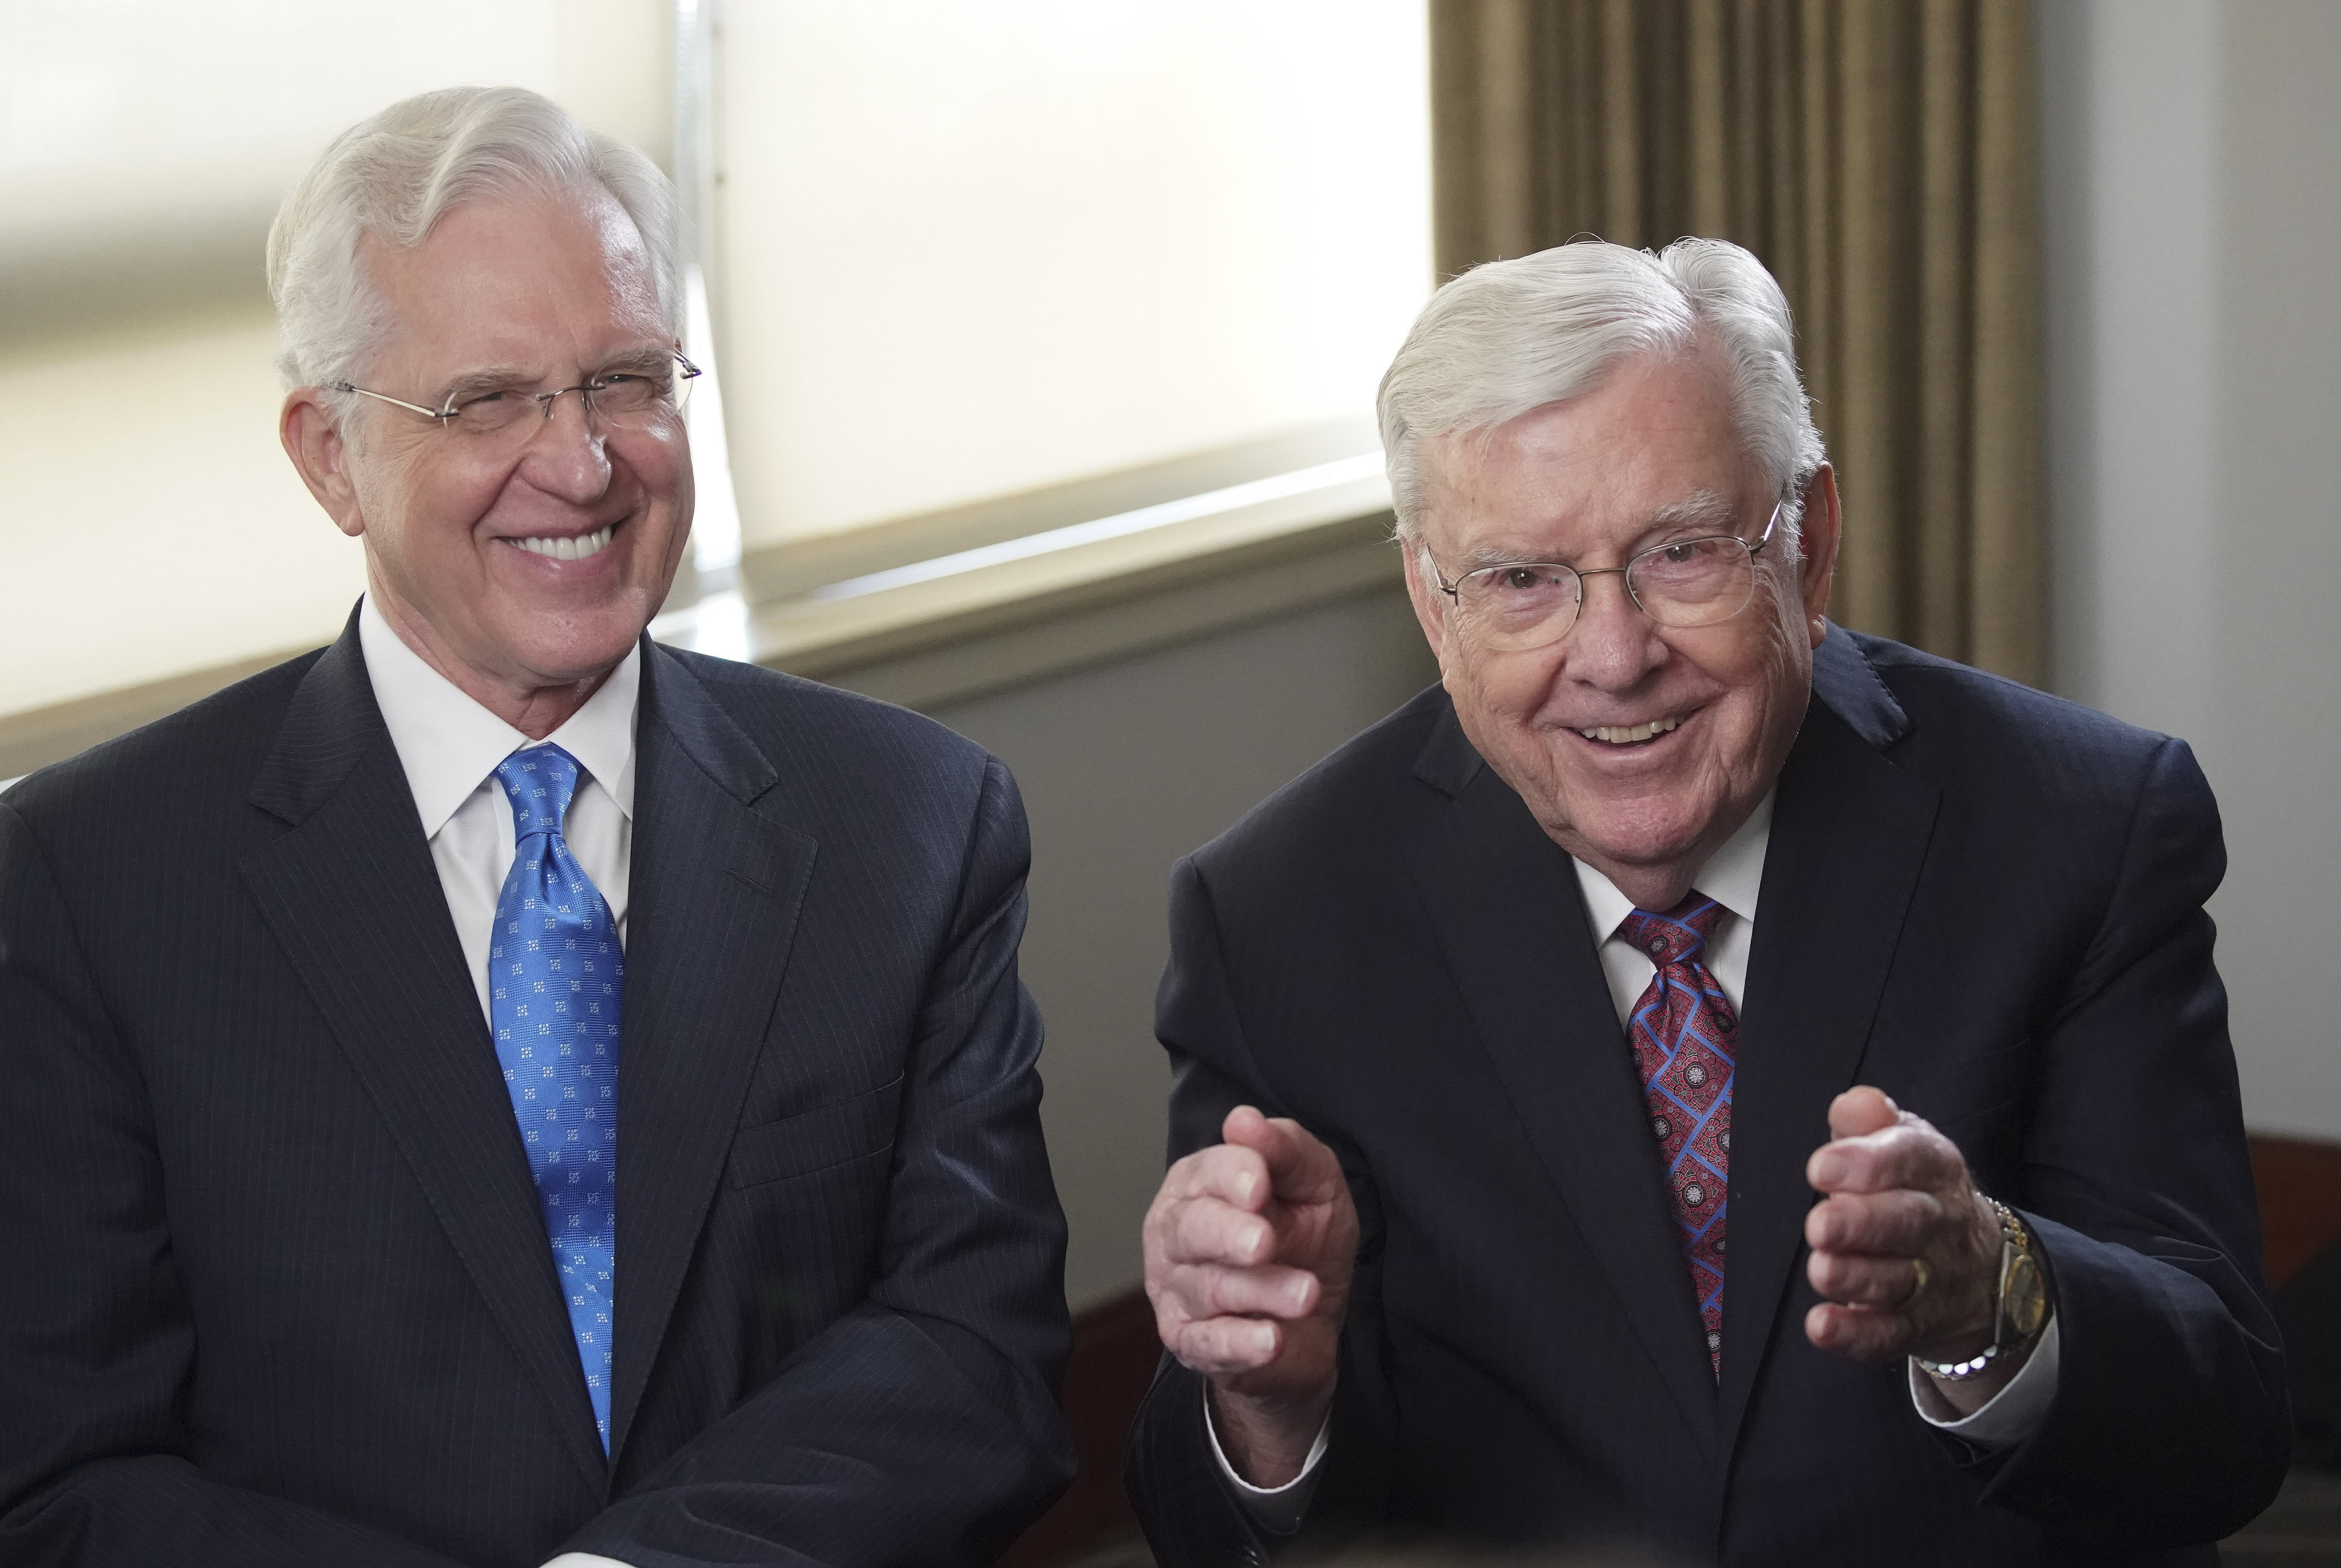 President M. Russell Ballard, acting president of the Quorum of the Twelve Apostles of The Church of Jesus Christ of Latter-day Saints, and Elder D. Todd Christofferson, of the Quorum of the Twelve Apostles, have some fun during an interview in Boston on Sunday, Oct. 20, 2019.